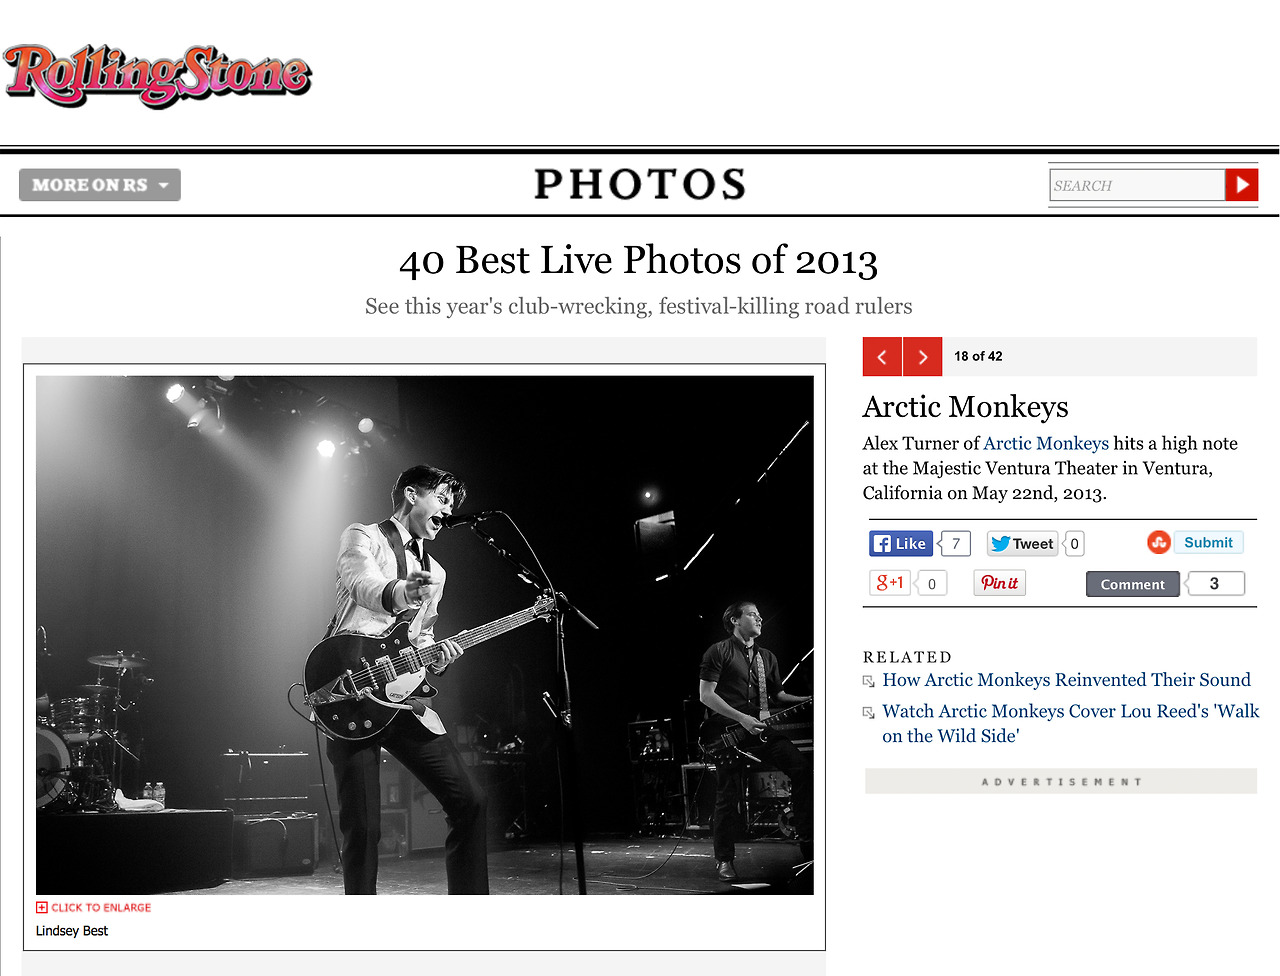 Rolling Stone included one of my photos of Arctic Monkeys in their end of the year Best Live Photos of 2013 gallery. Cool. (I have a few others in their full 2013 gallery as well.) http://www.rollingstone.com/music/pictures/40-best-live-photos-of-2013-20131217/arctic-monkeys-0254842 All Images Copyright © Lindsey Best. Please do not steal my images without prior consent & proper credit.  If you're interested in licensing an image or acquiring a print, please email me. www.LindseyBest.com